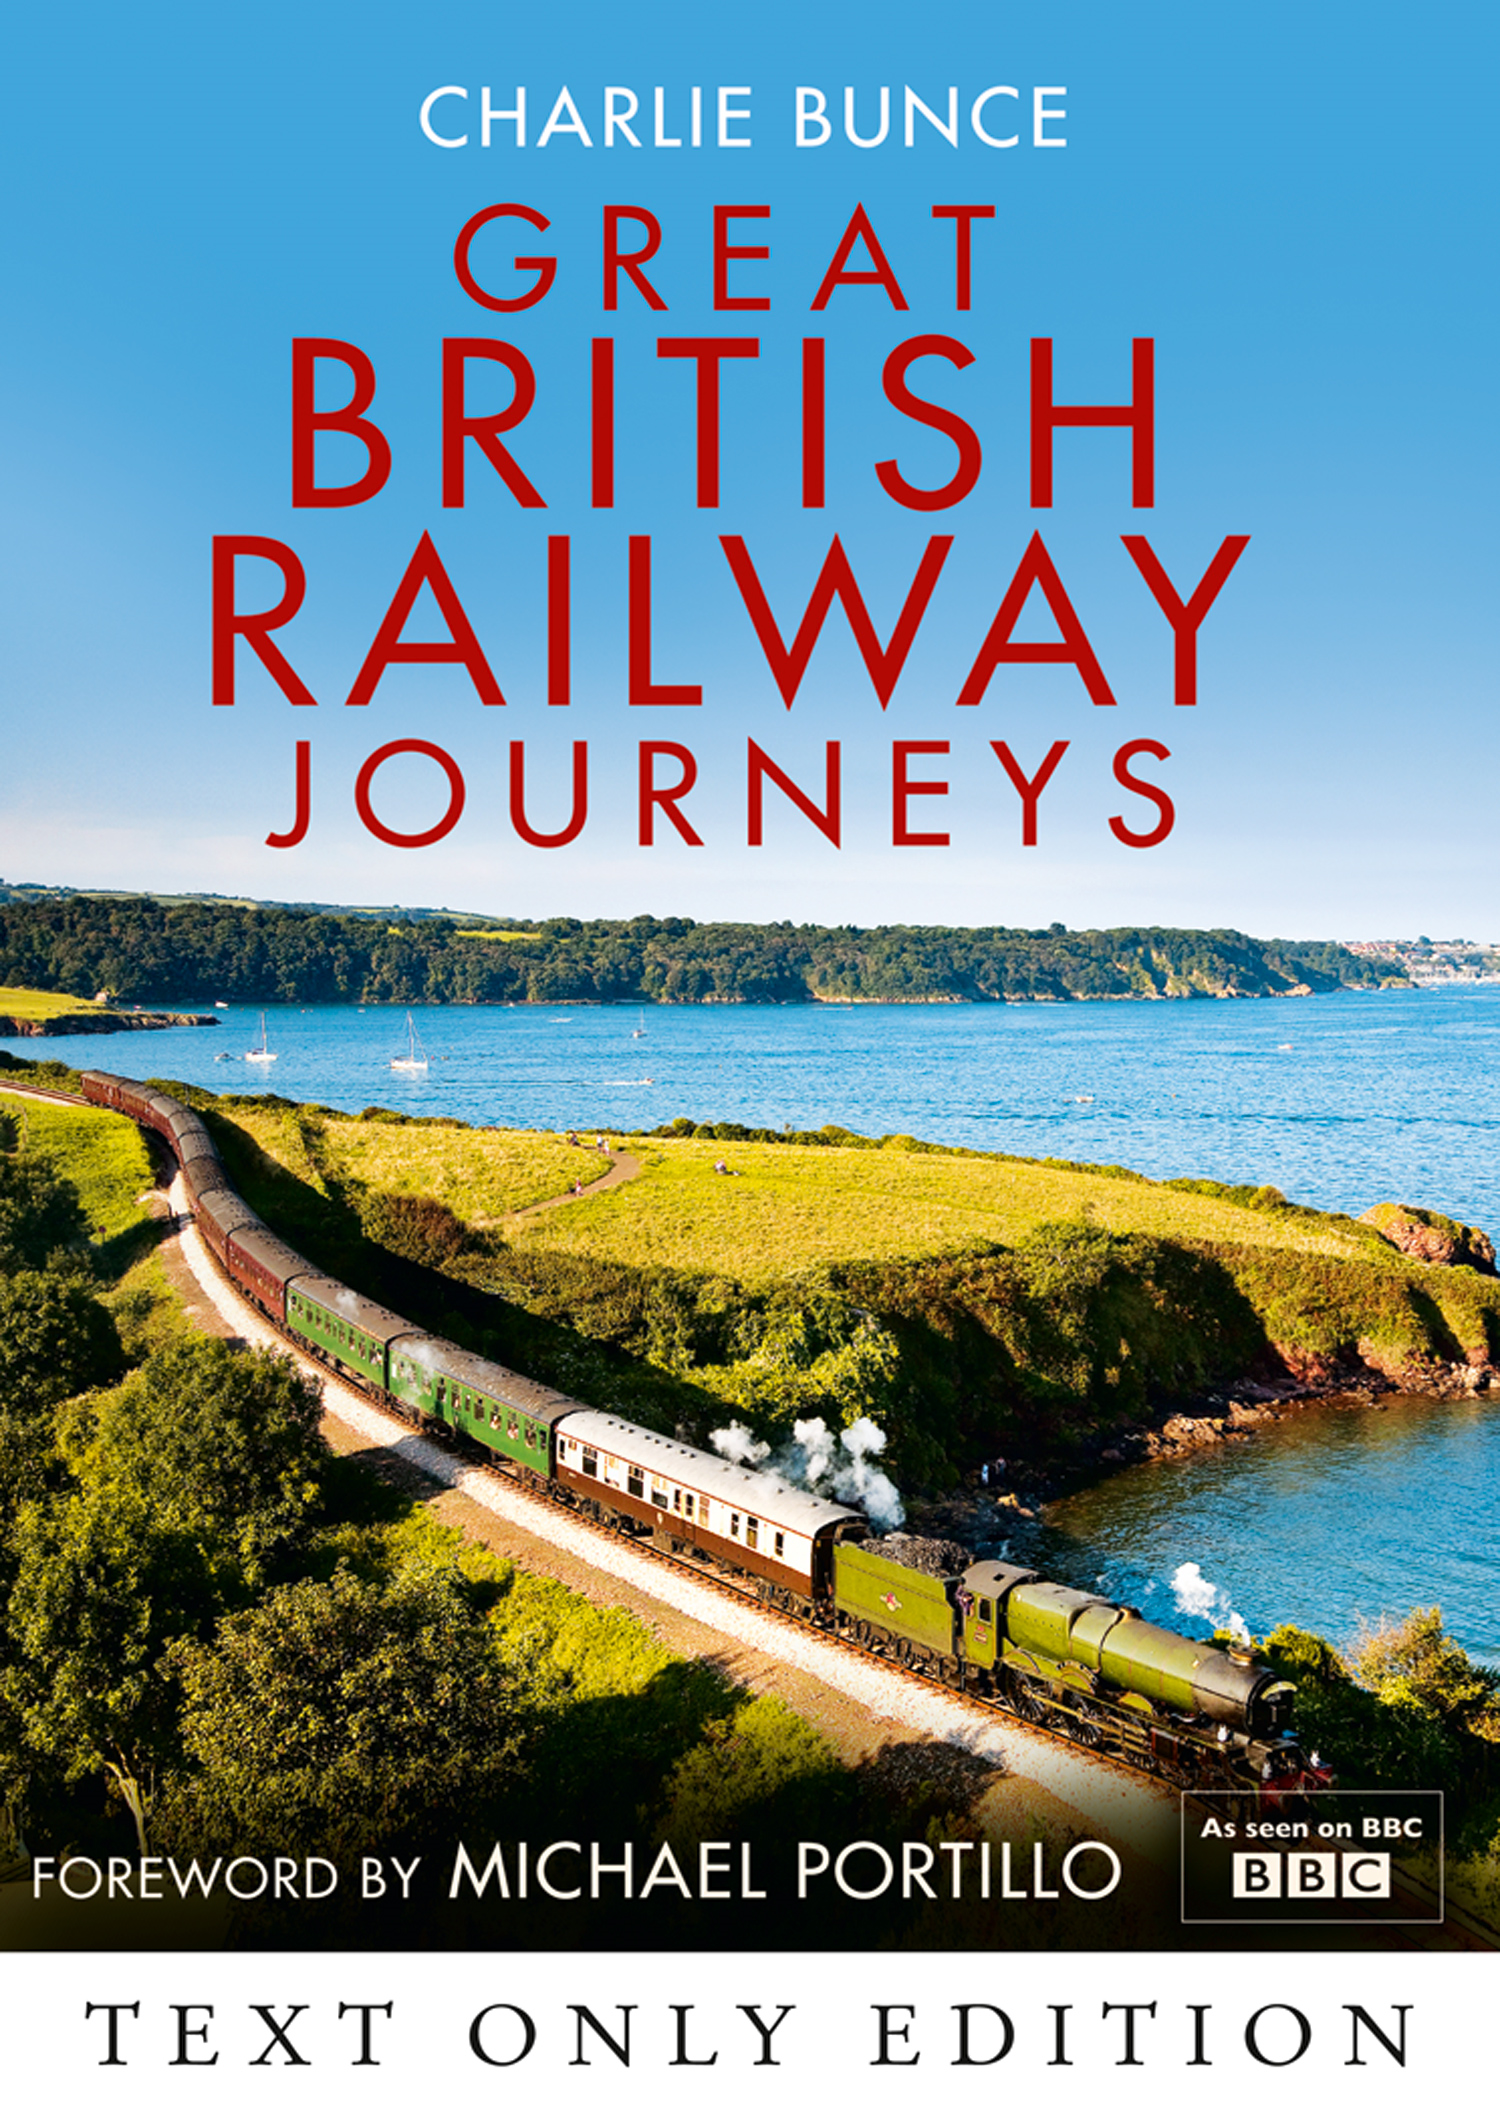 Great British Railway Journeys Text Only